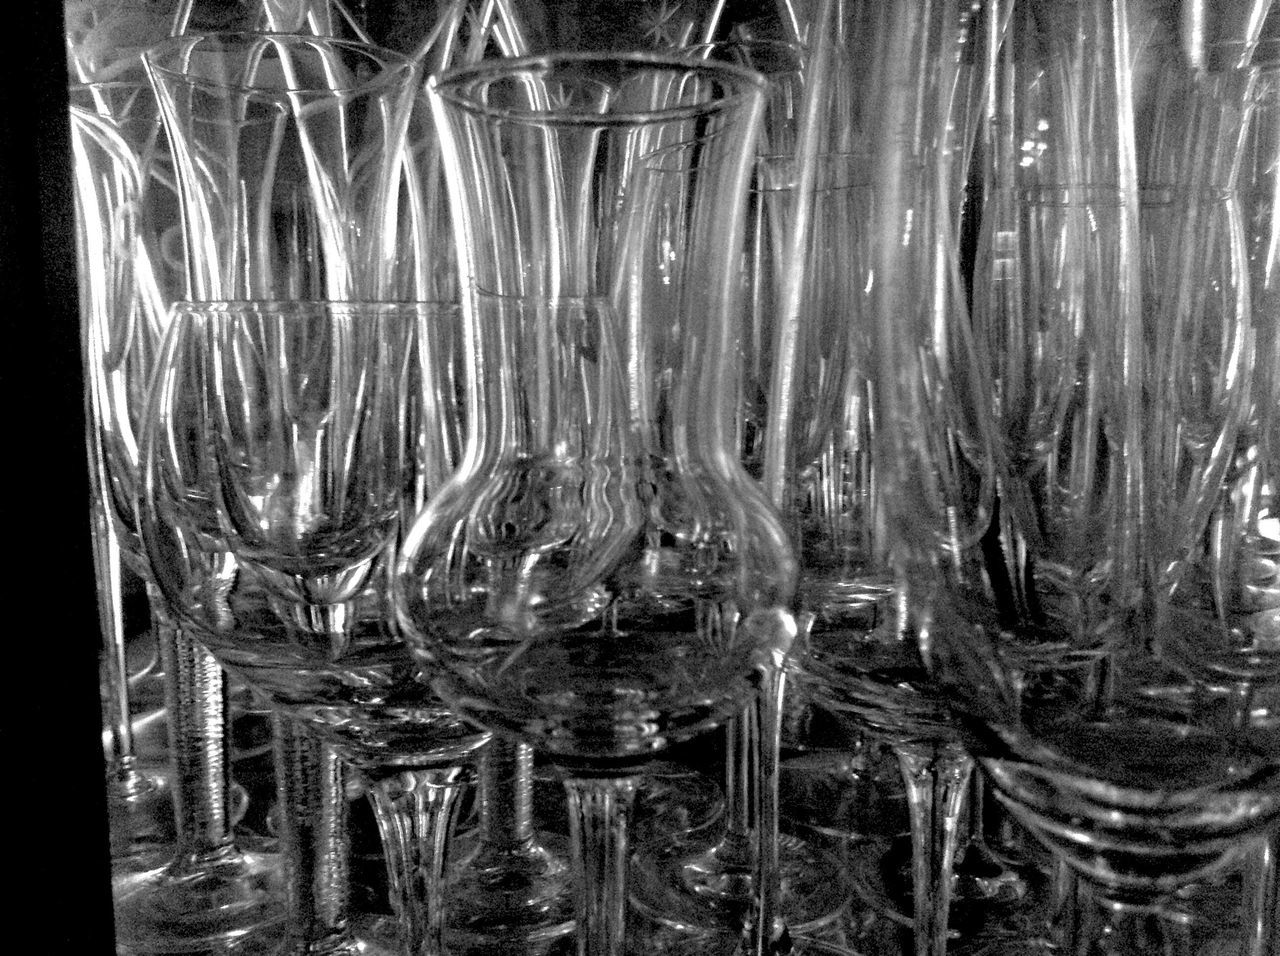 Glasses Waiting For The Guests?